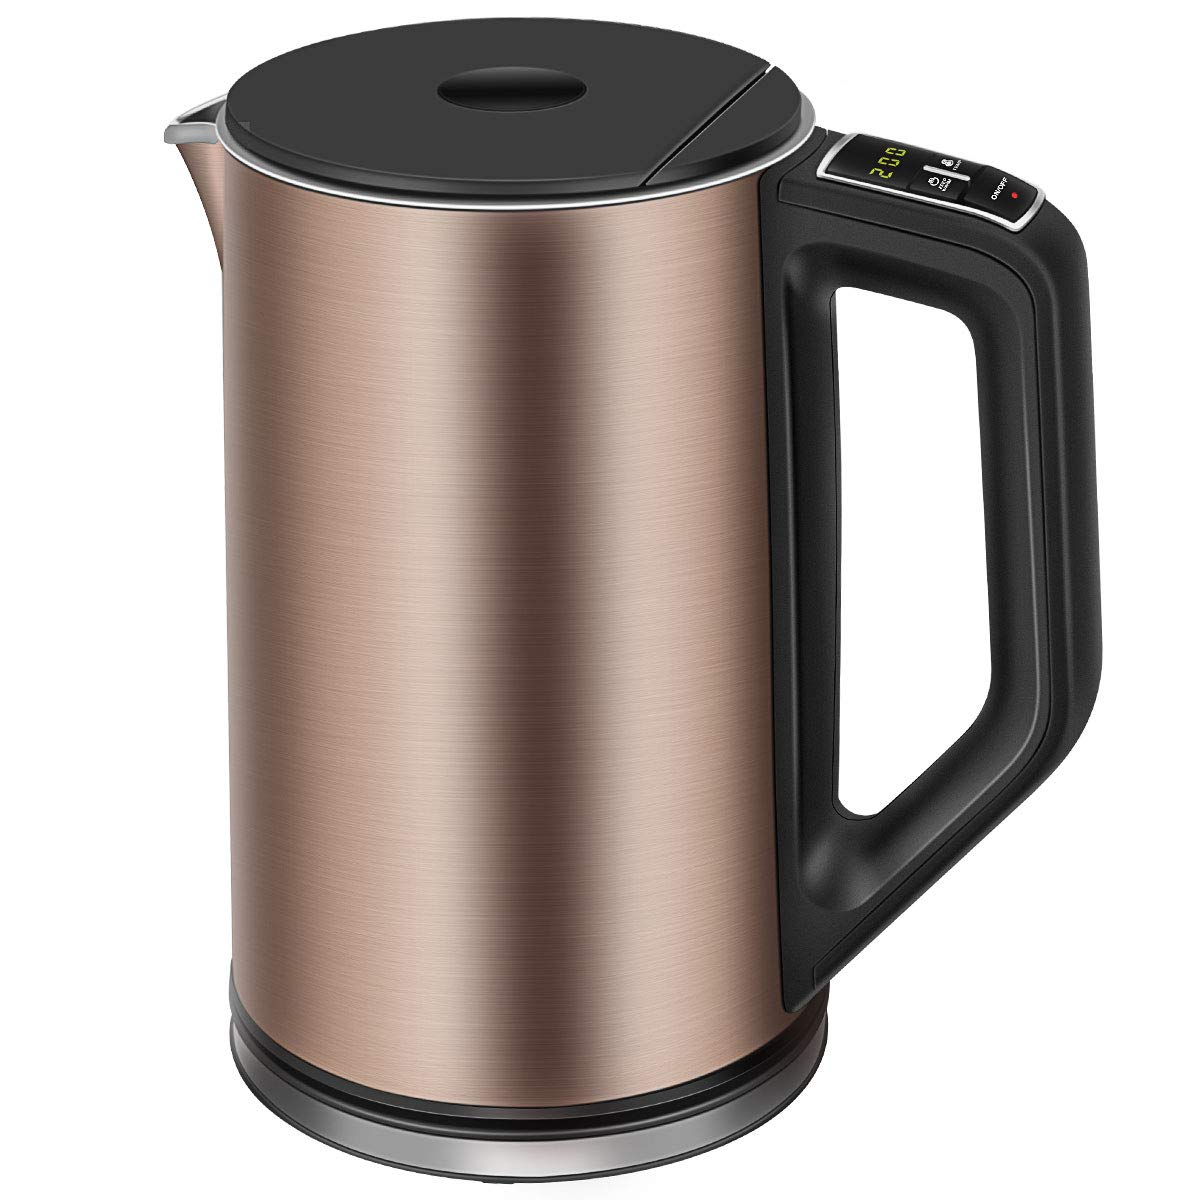 Electric Kettle Temperature Control, CUSIBOX 1.5L Cool Touch Water Kettle Double Wall Stainless Steel with Keep Warm Function, 1500W